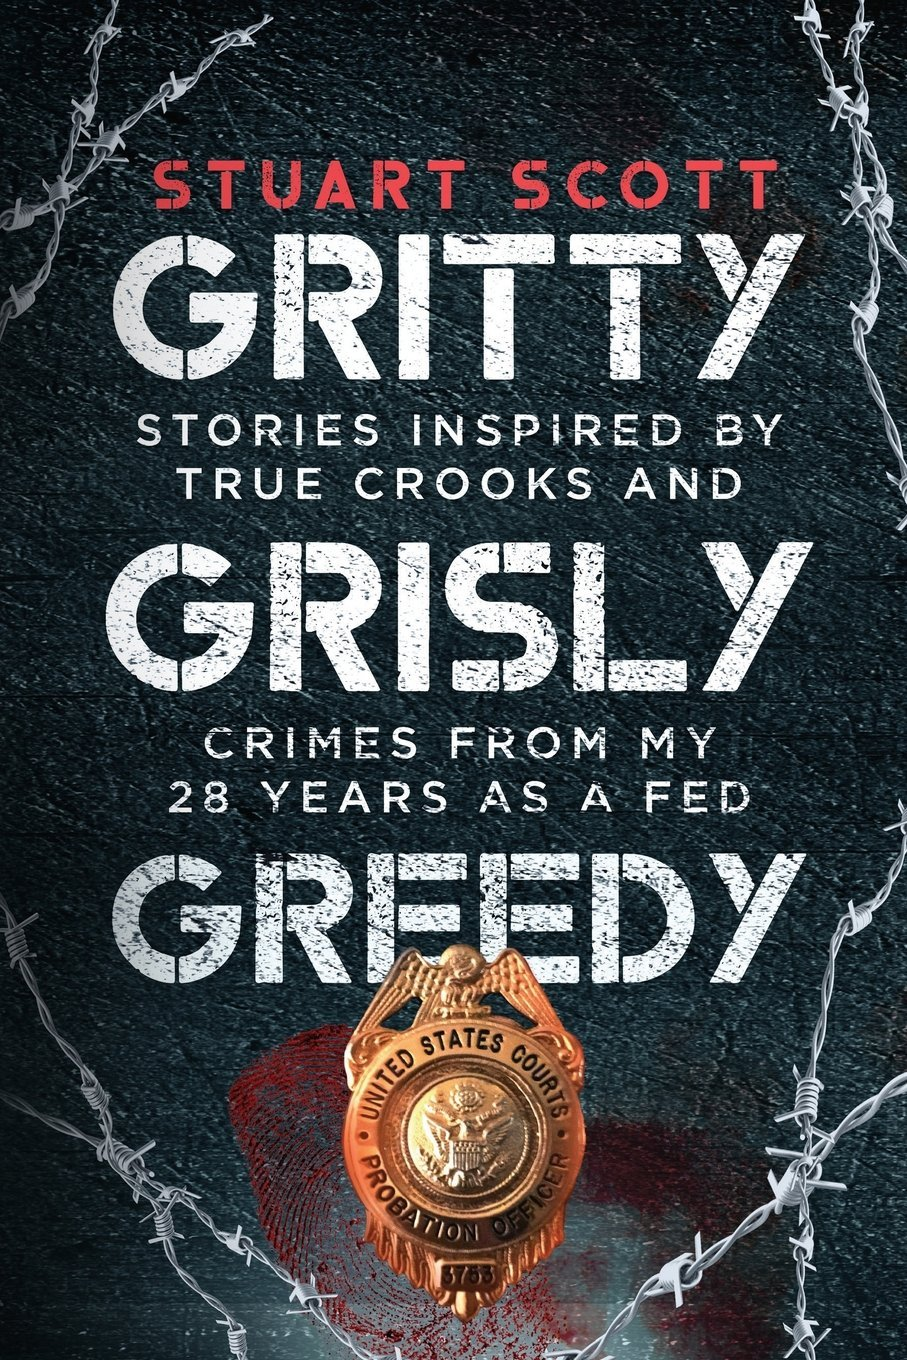 Gritty, Grisly and Greedy: Crimes and Characters Inspired by 20 Years as a Fed pdf